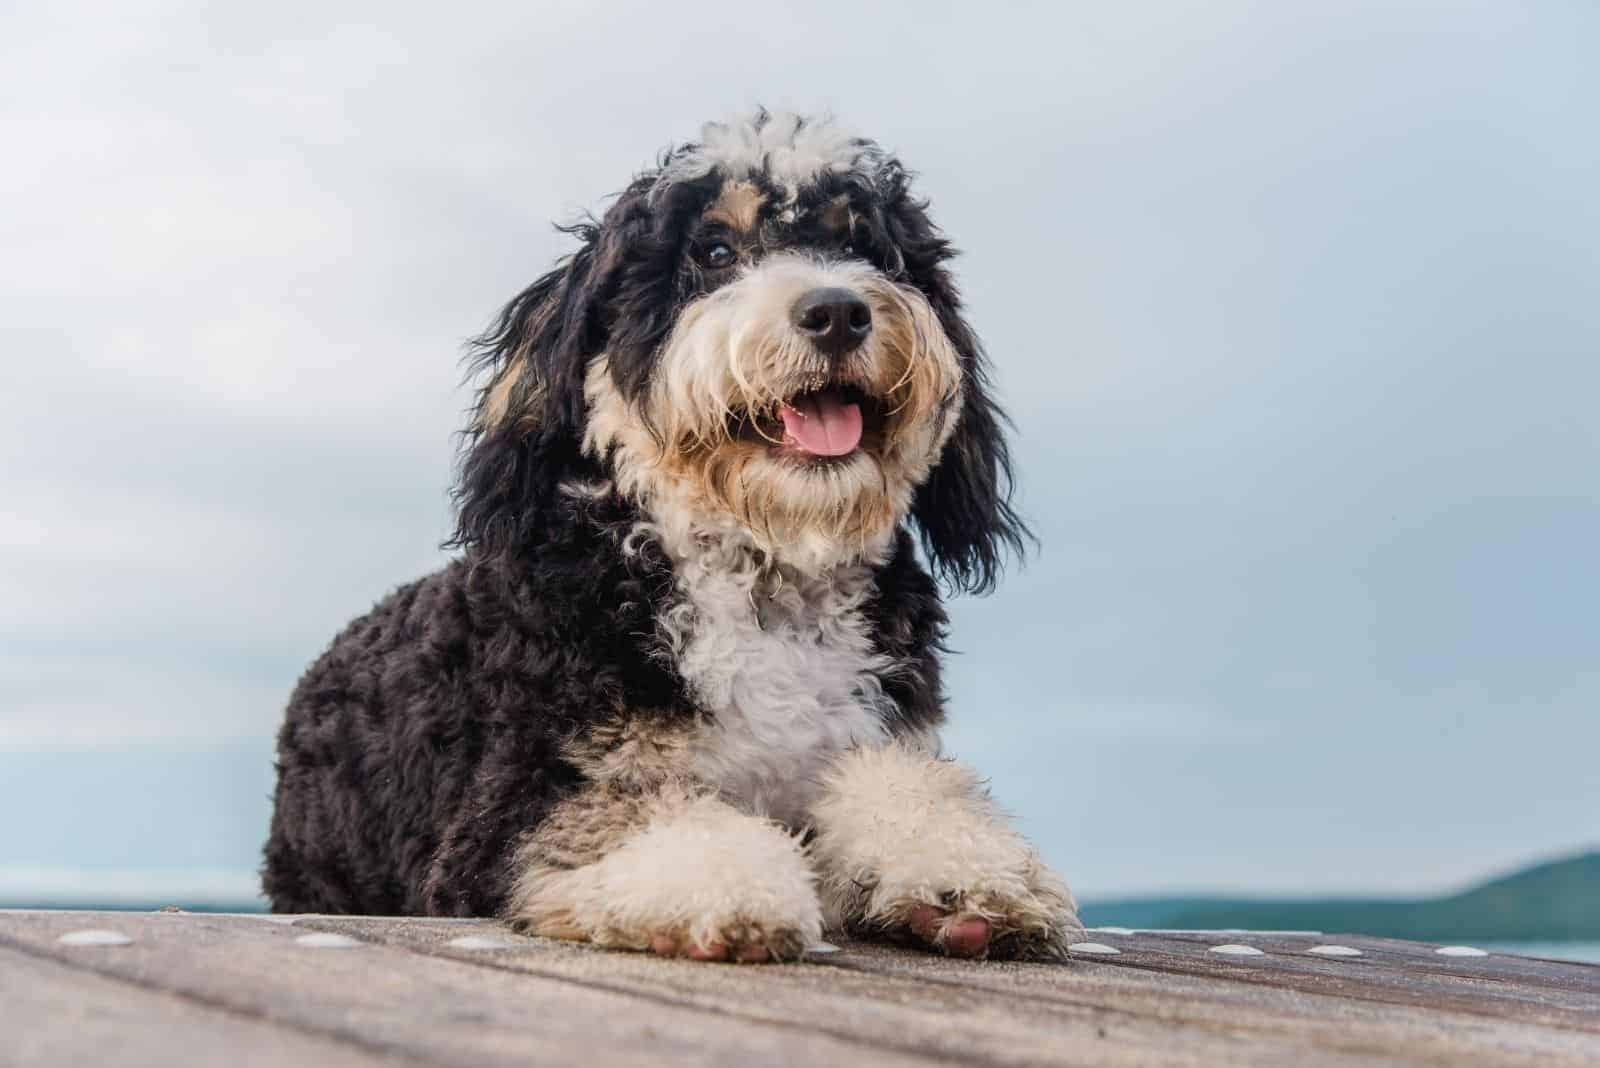 bernedoodle puppy lies on a wooden pier